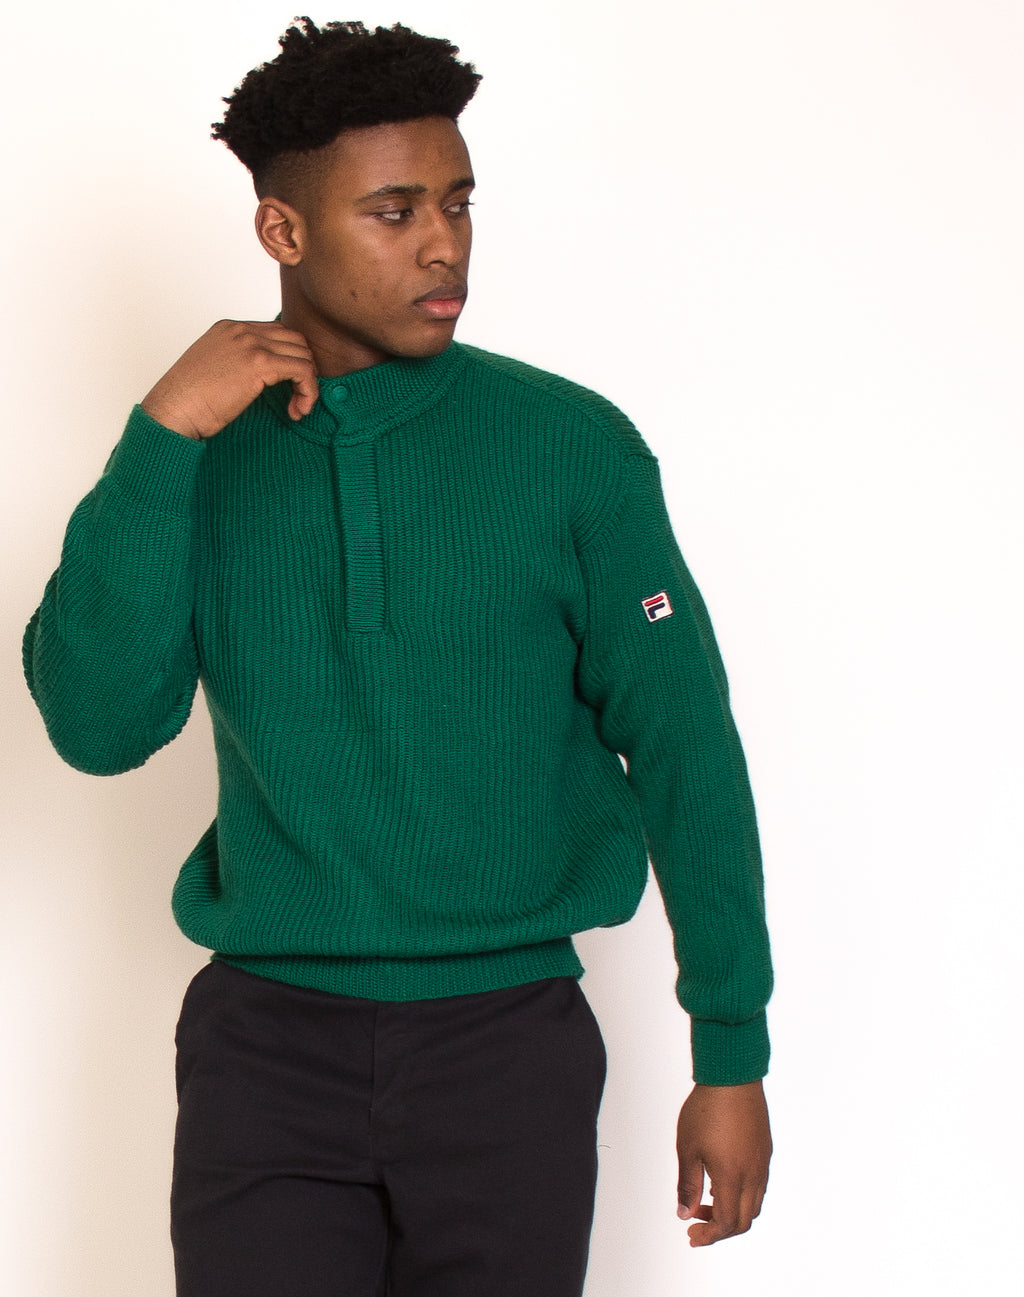 FILA GREEN KNIT